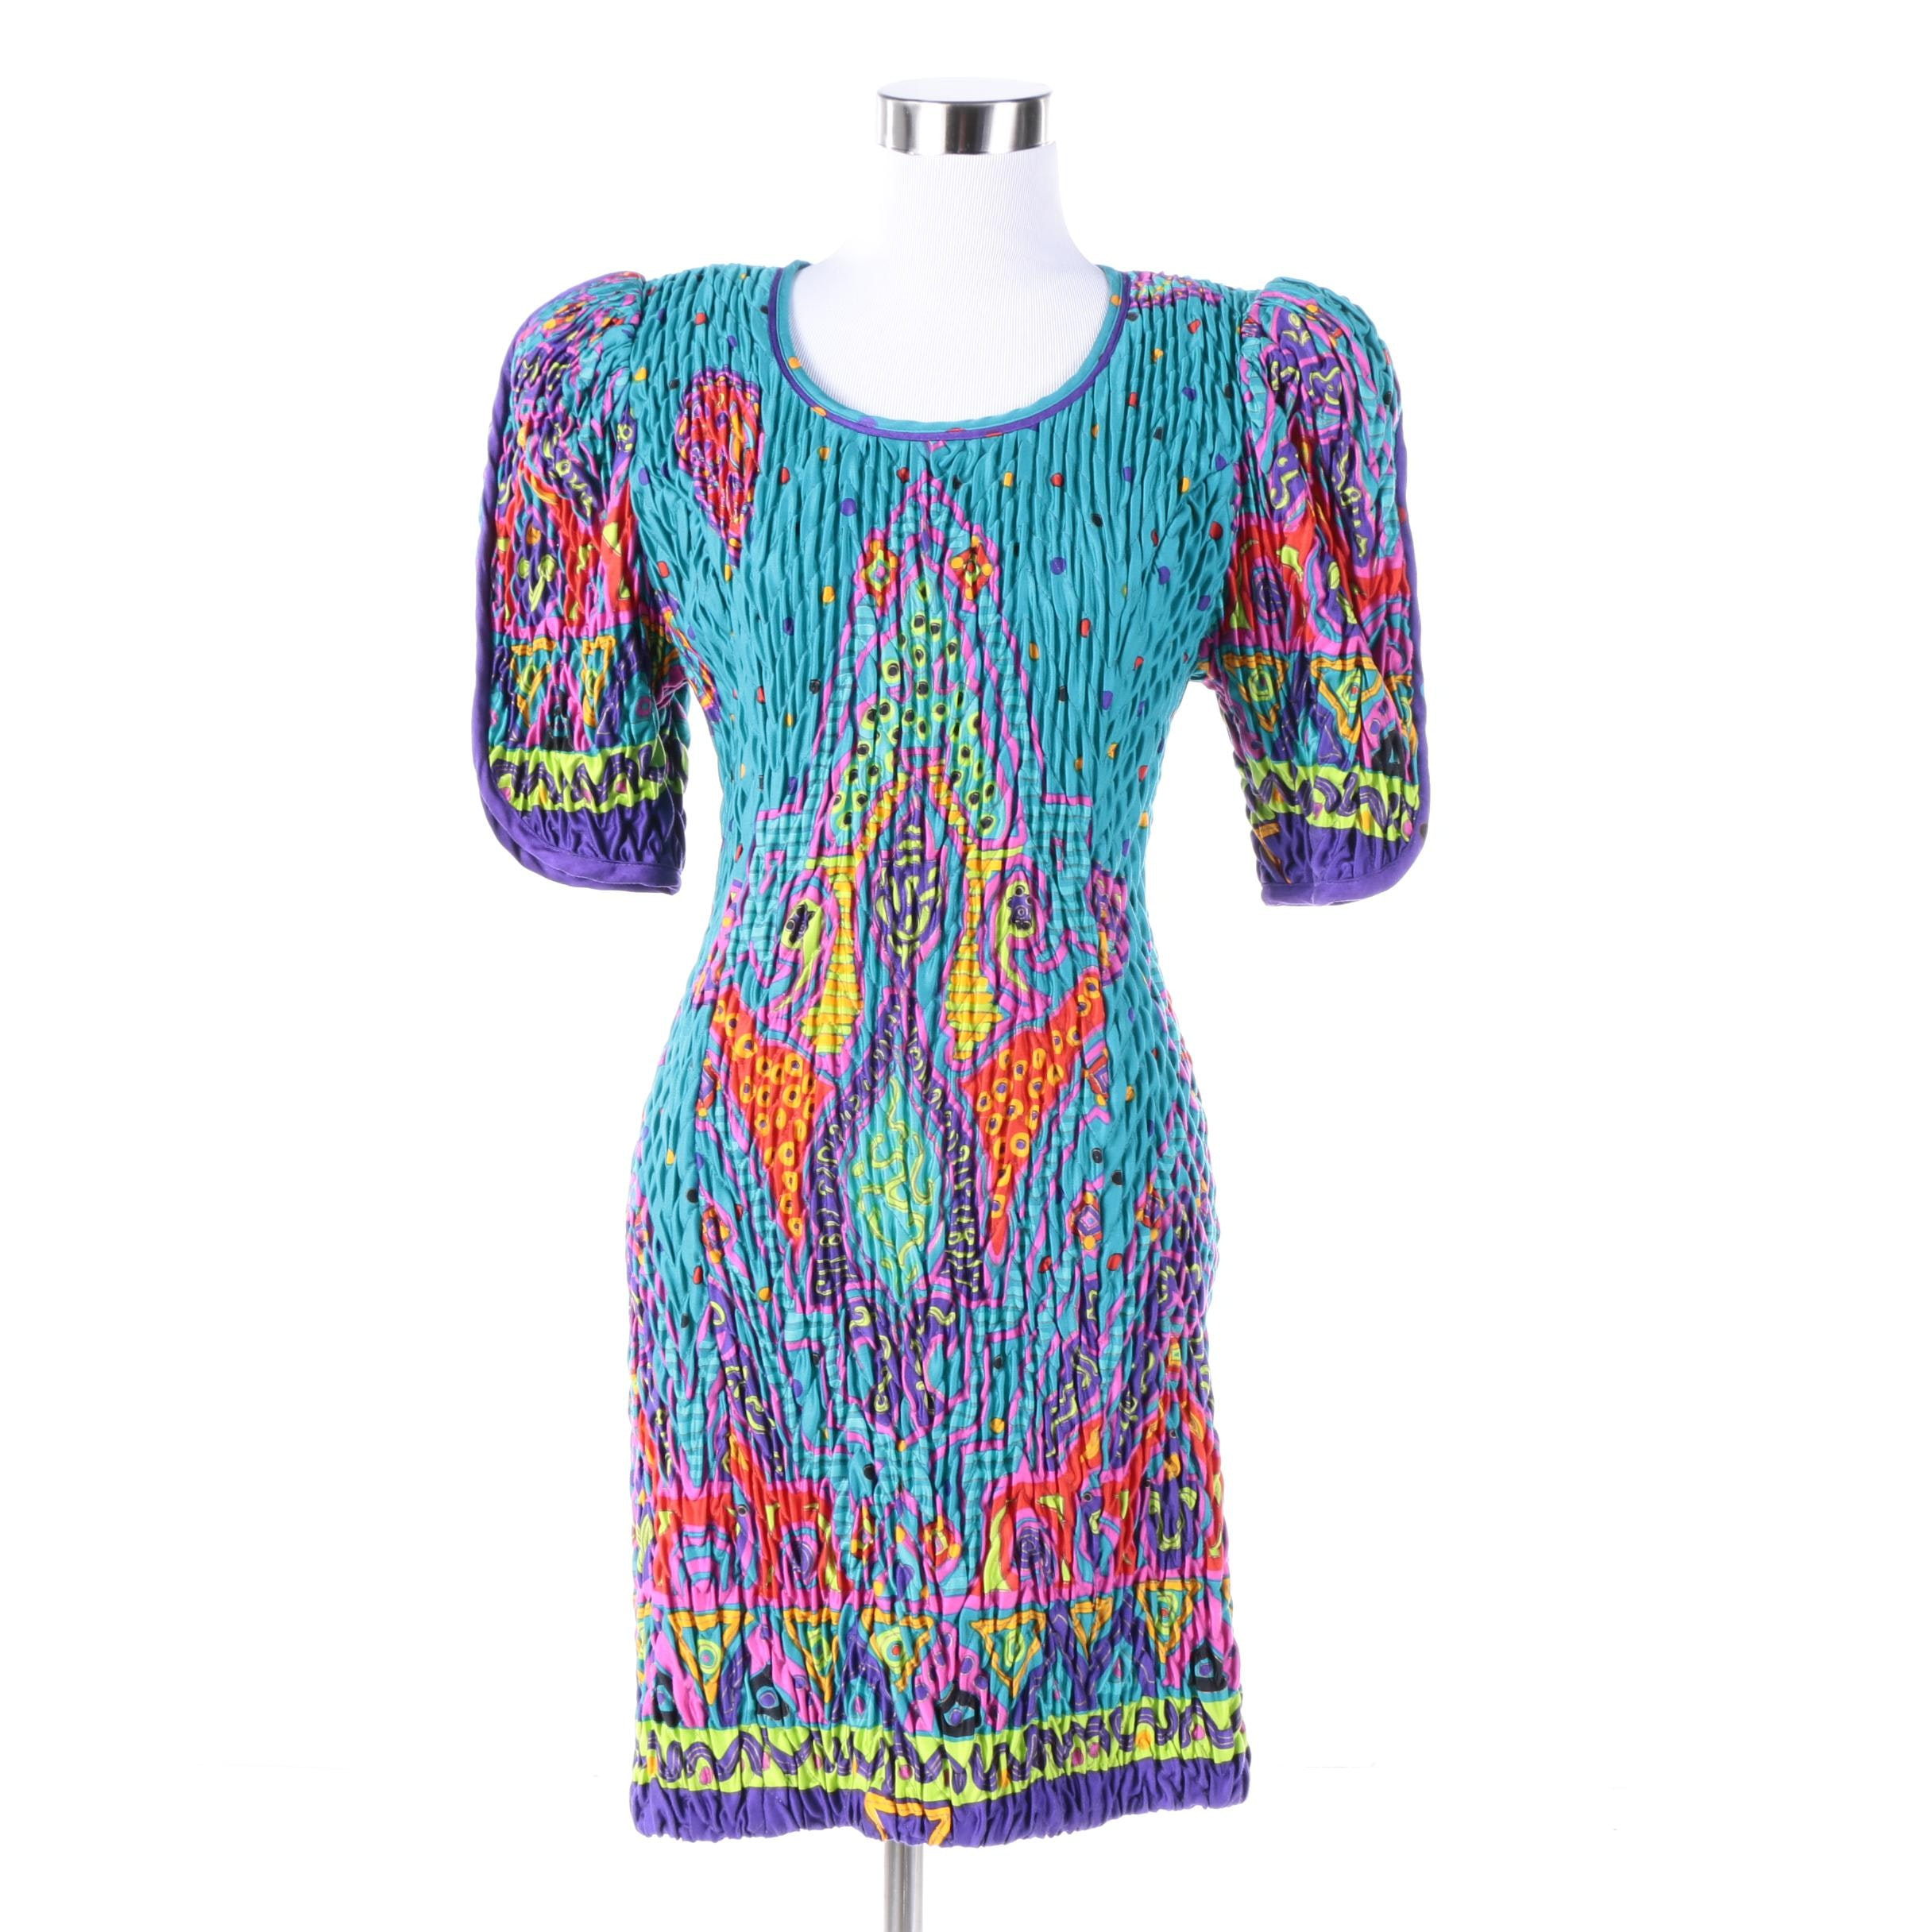 Circa 1980s Jeanne Marc Multicolored Print Dress